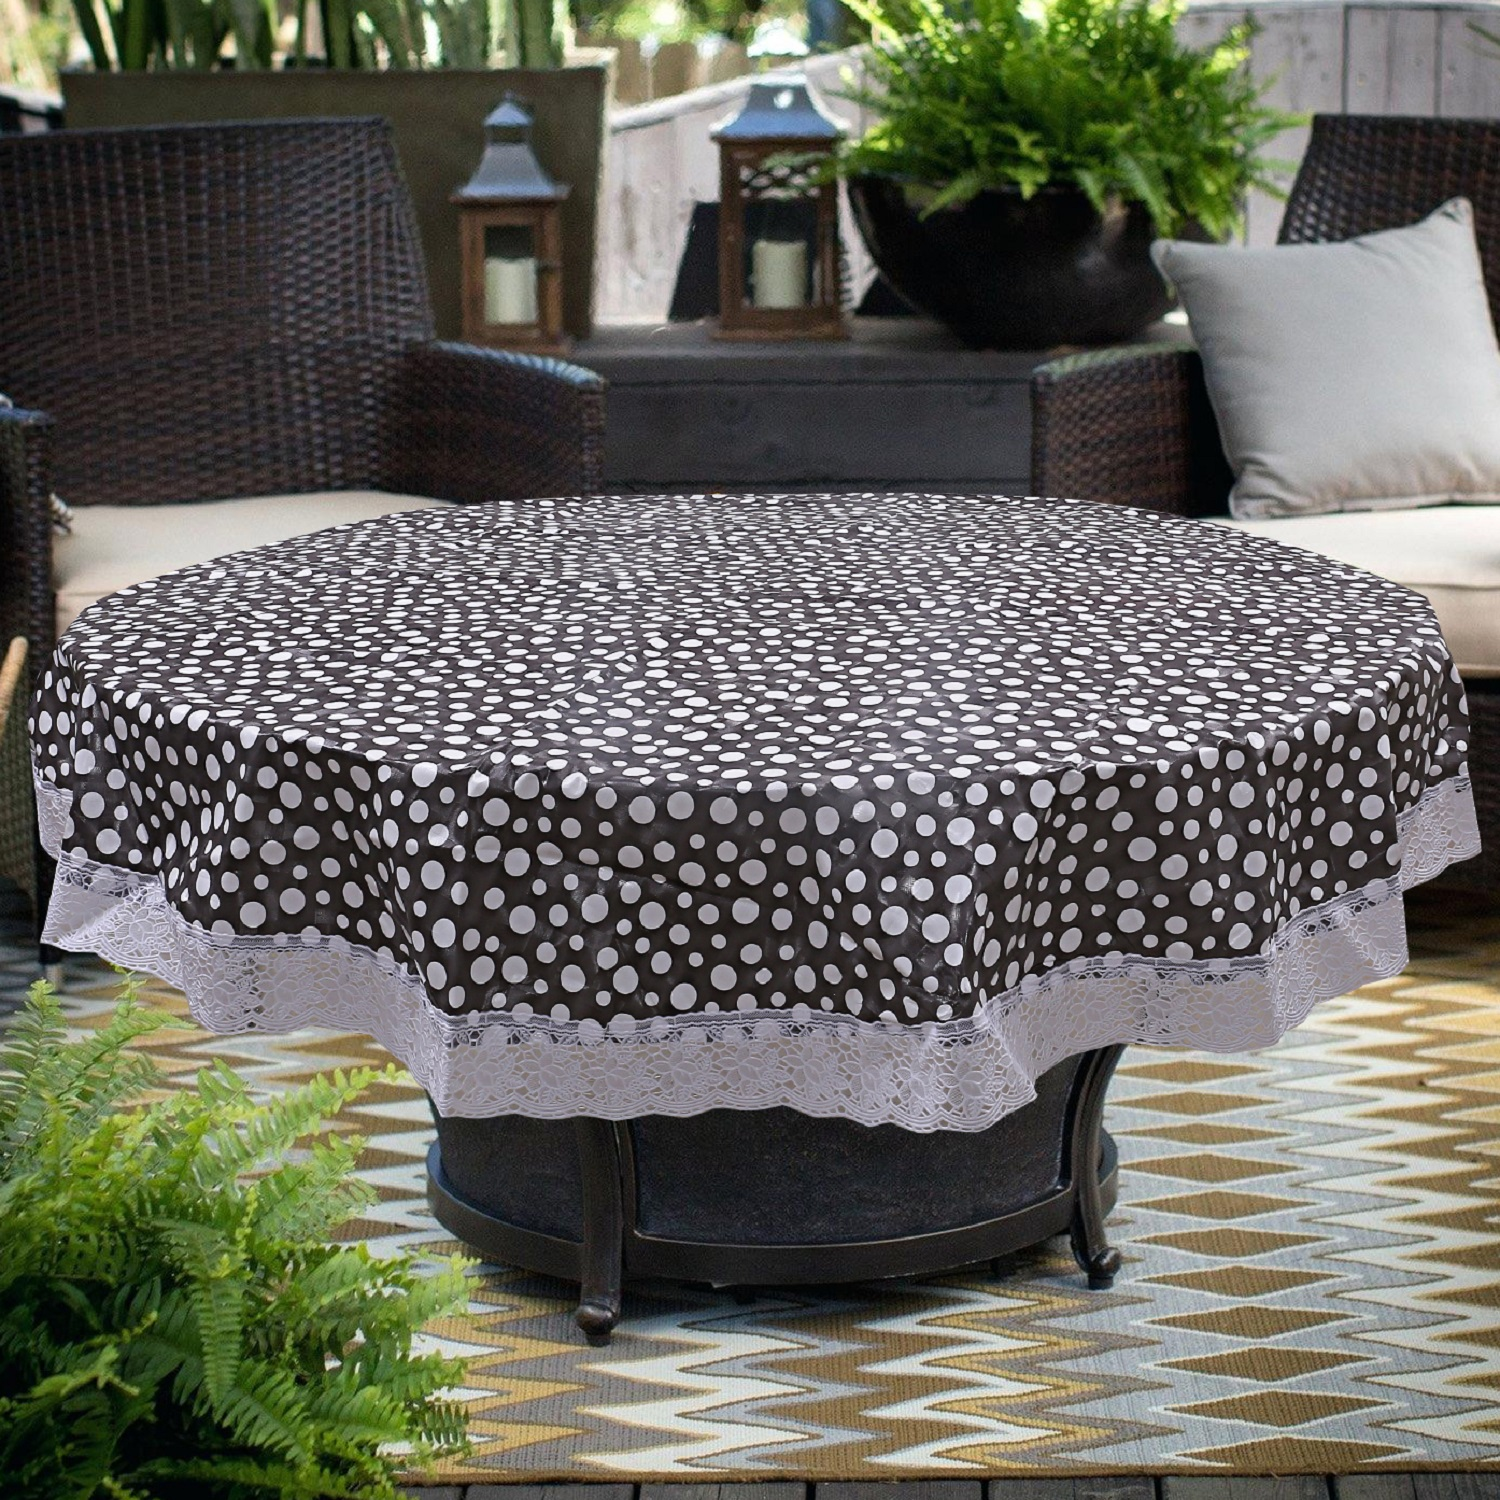 "Kuber Industries PVC 4 Seater Round Table Cover 60""x 60"" (Grey) -CTLTC11167"